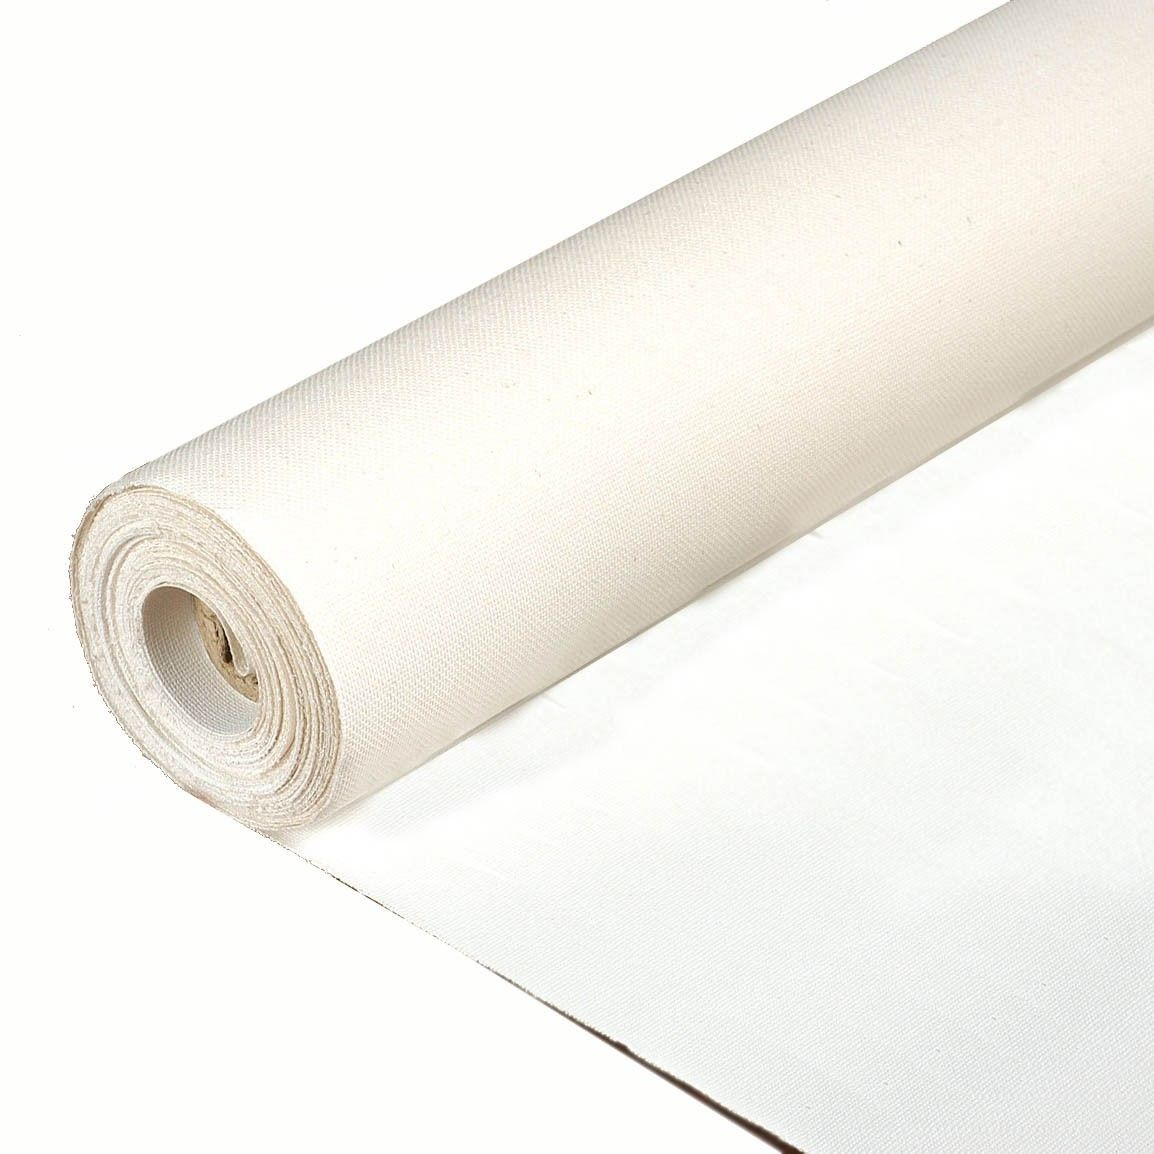 "Rolled Primed Cotton/Poly portrait smooth Canvas, 60"" wide. 6, 20, 50 and 100 yard roll."